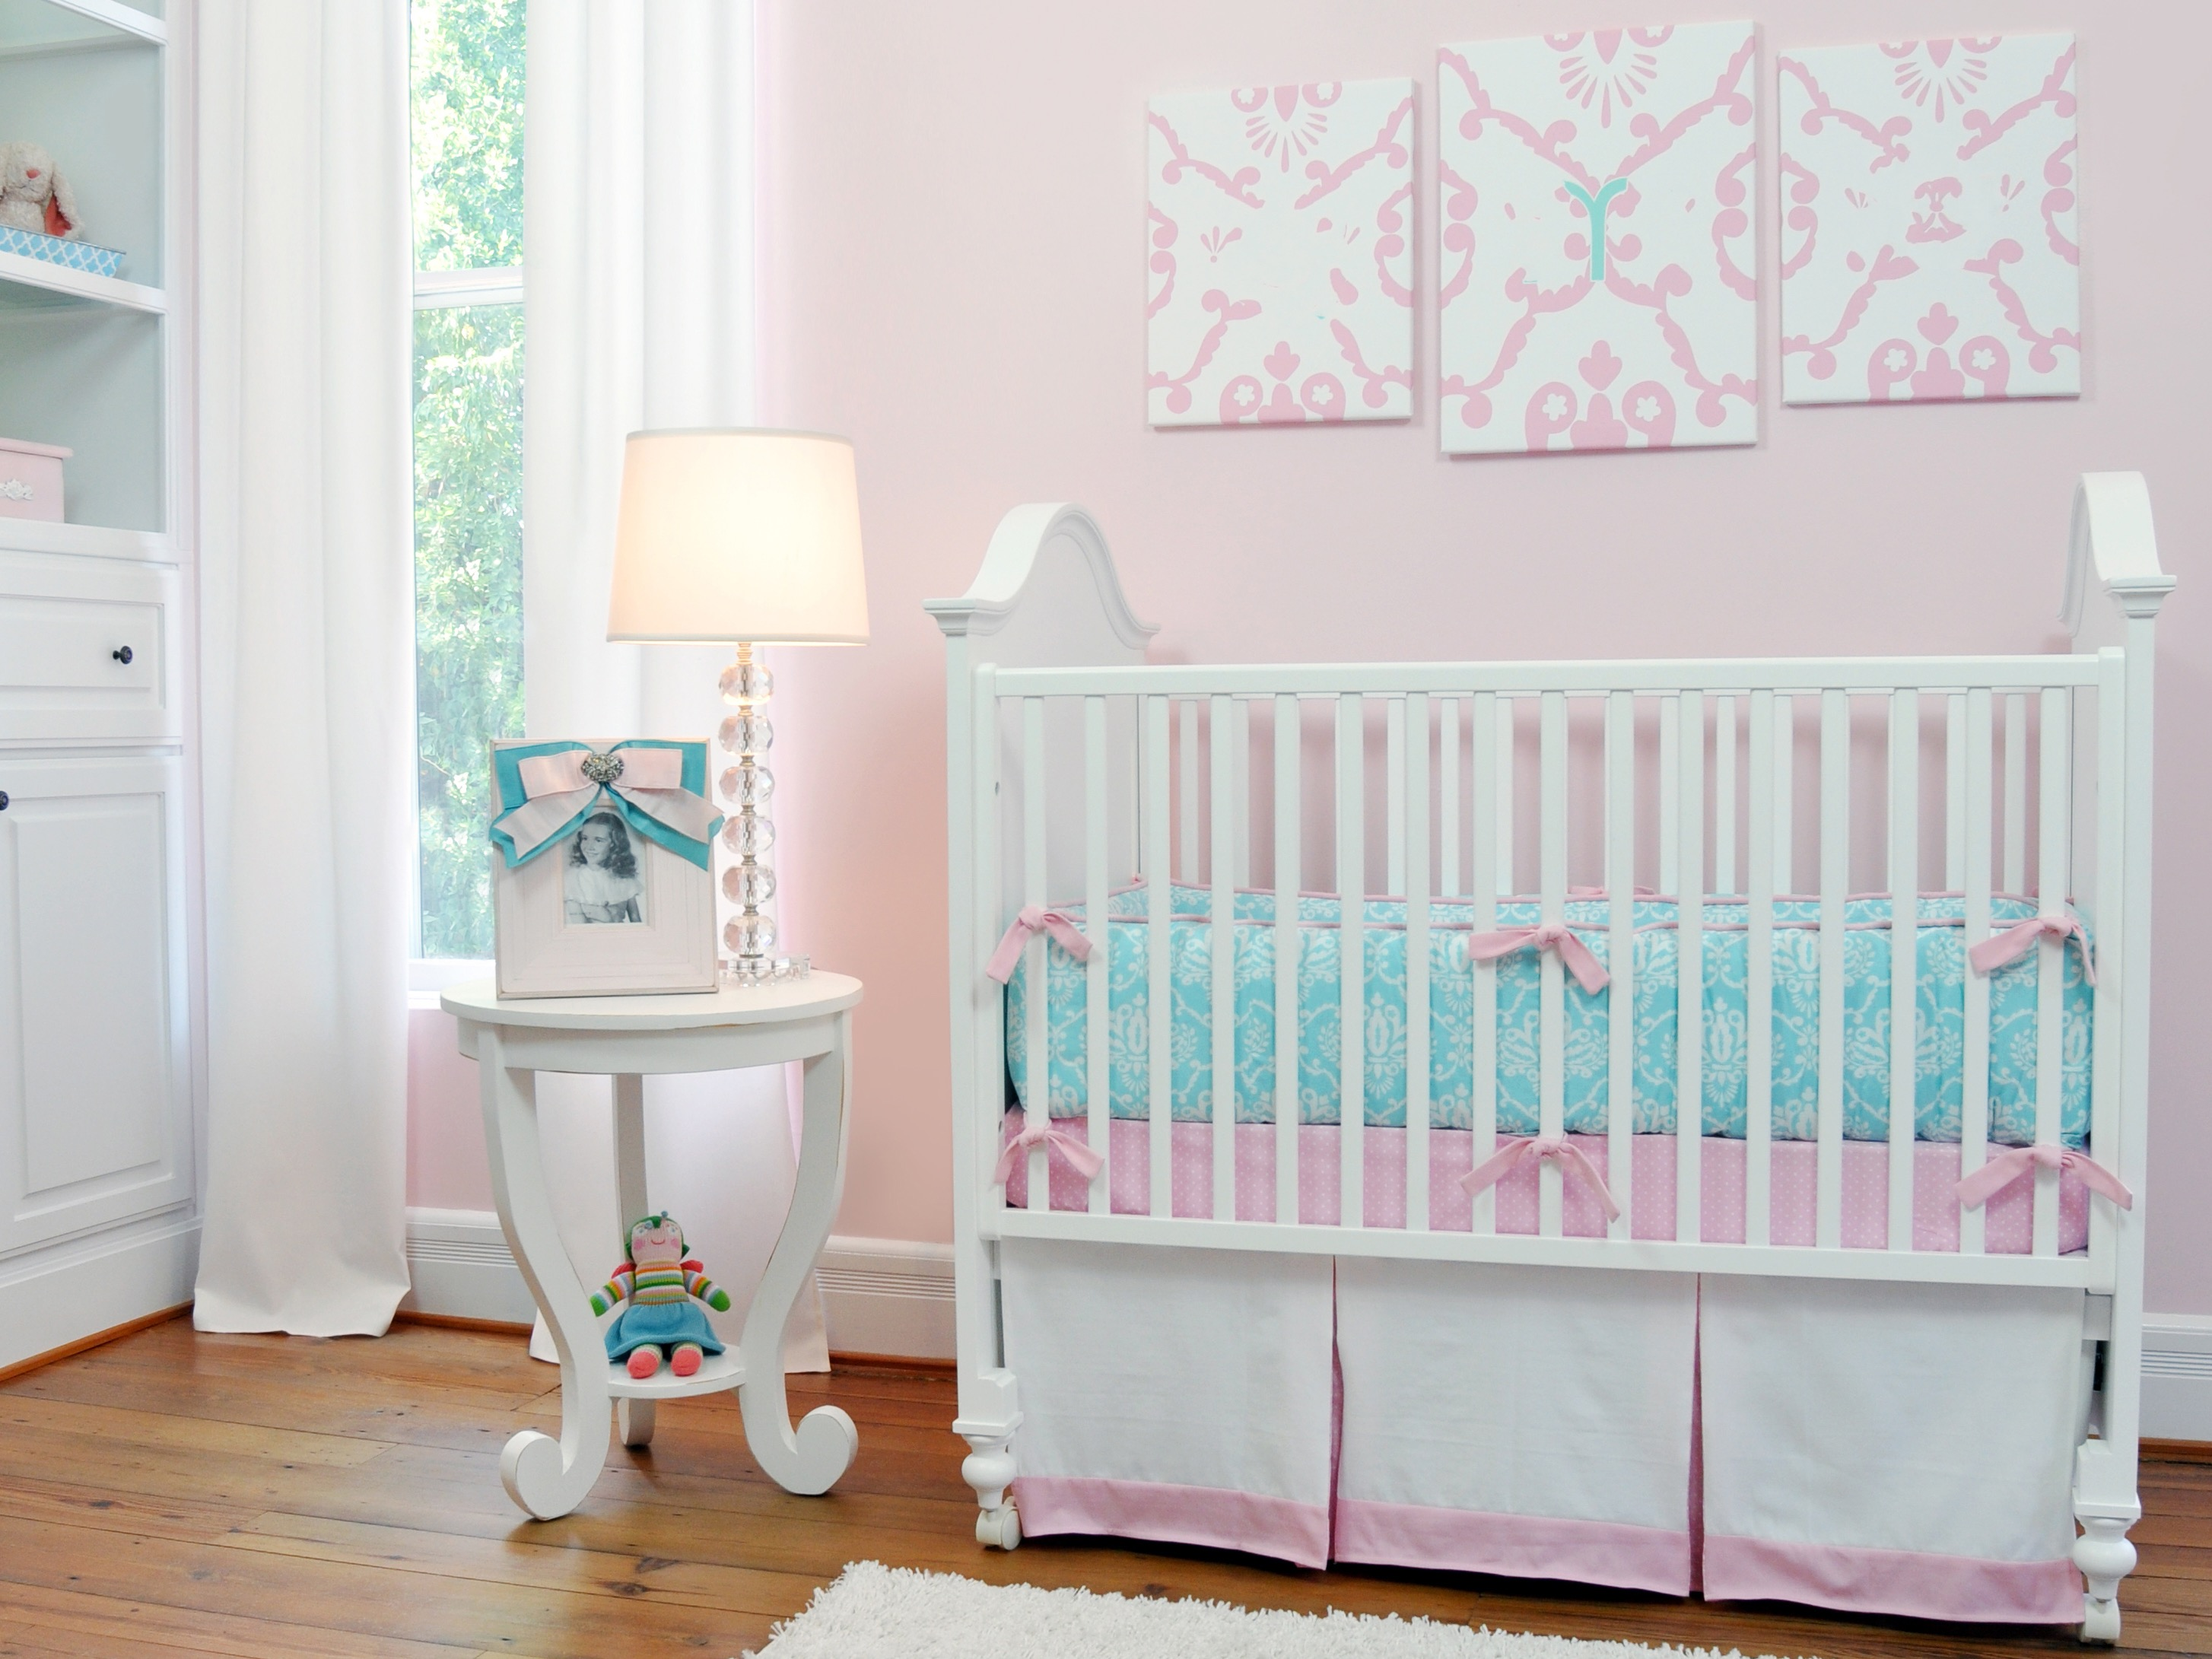 Sweet And Feminine Baby Room Decoration In Pink Theme (Image 31 of 33)